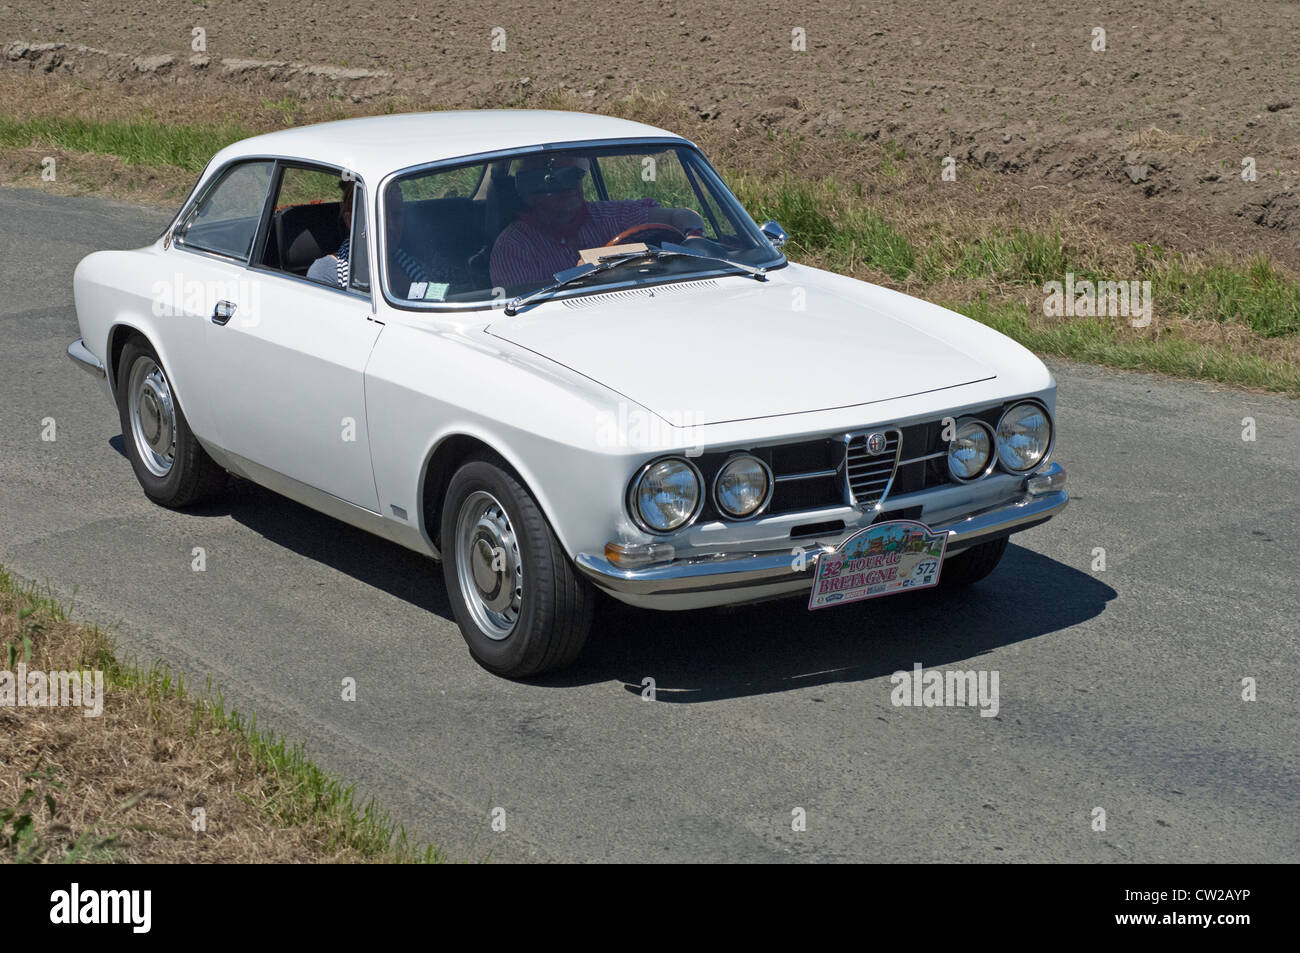 alfa romeo 1750 gtv coupe of 1968 in the tour de bretagne near pordic stock photo royalty free. Black Bedroom Furniture Sets. Home Design Ideas